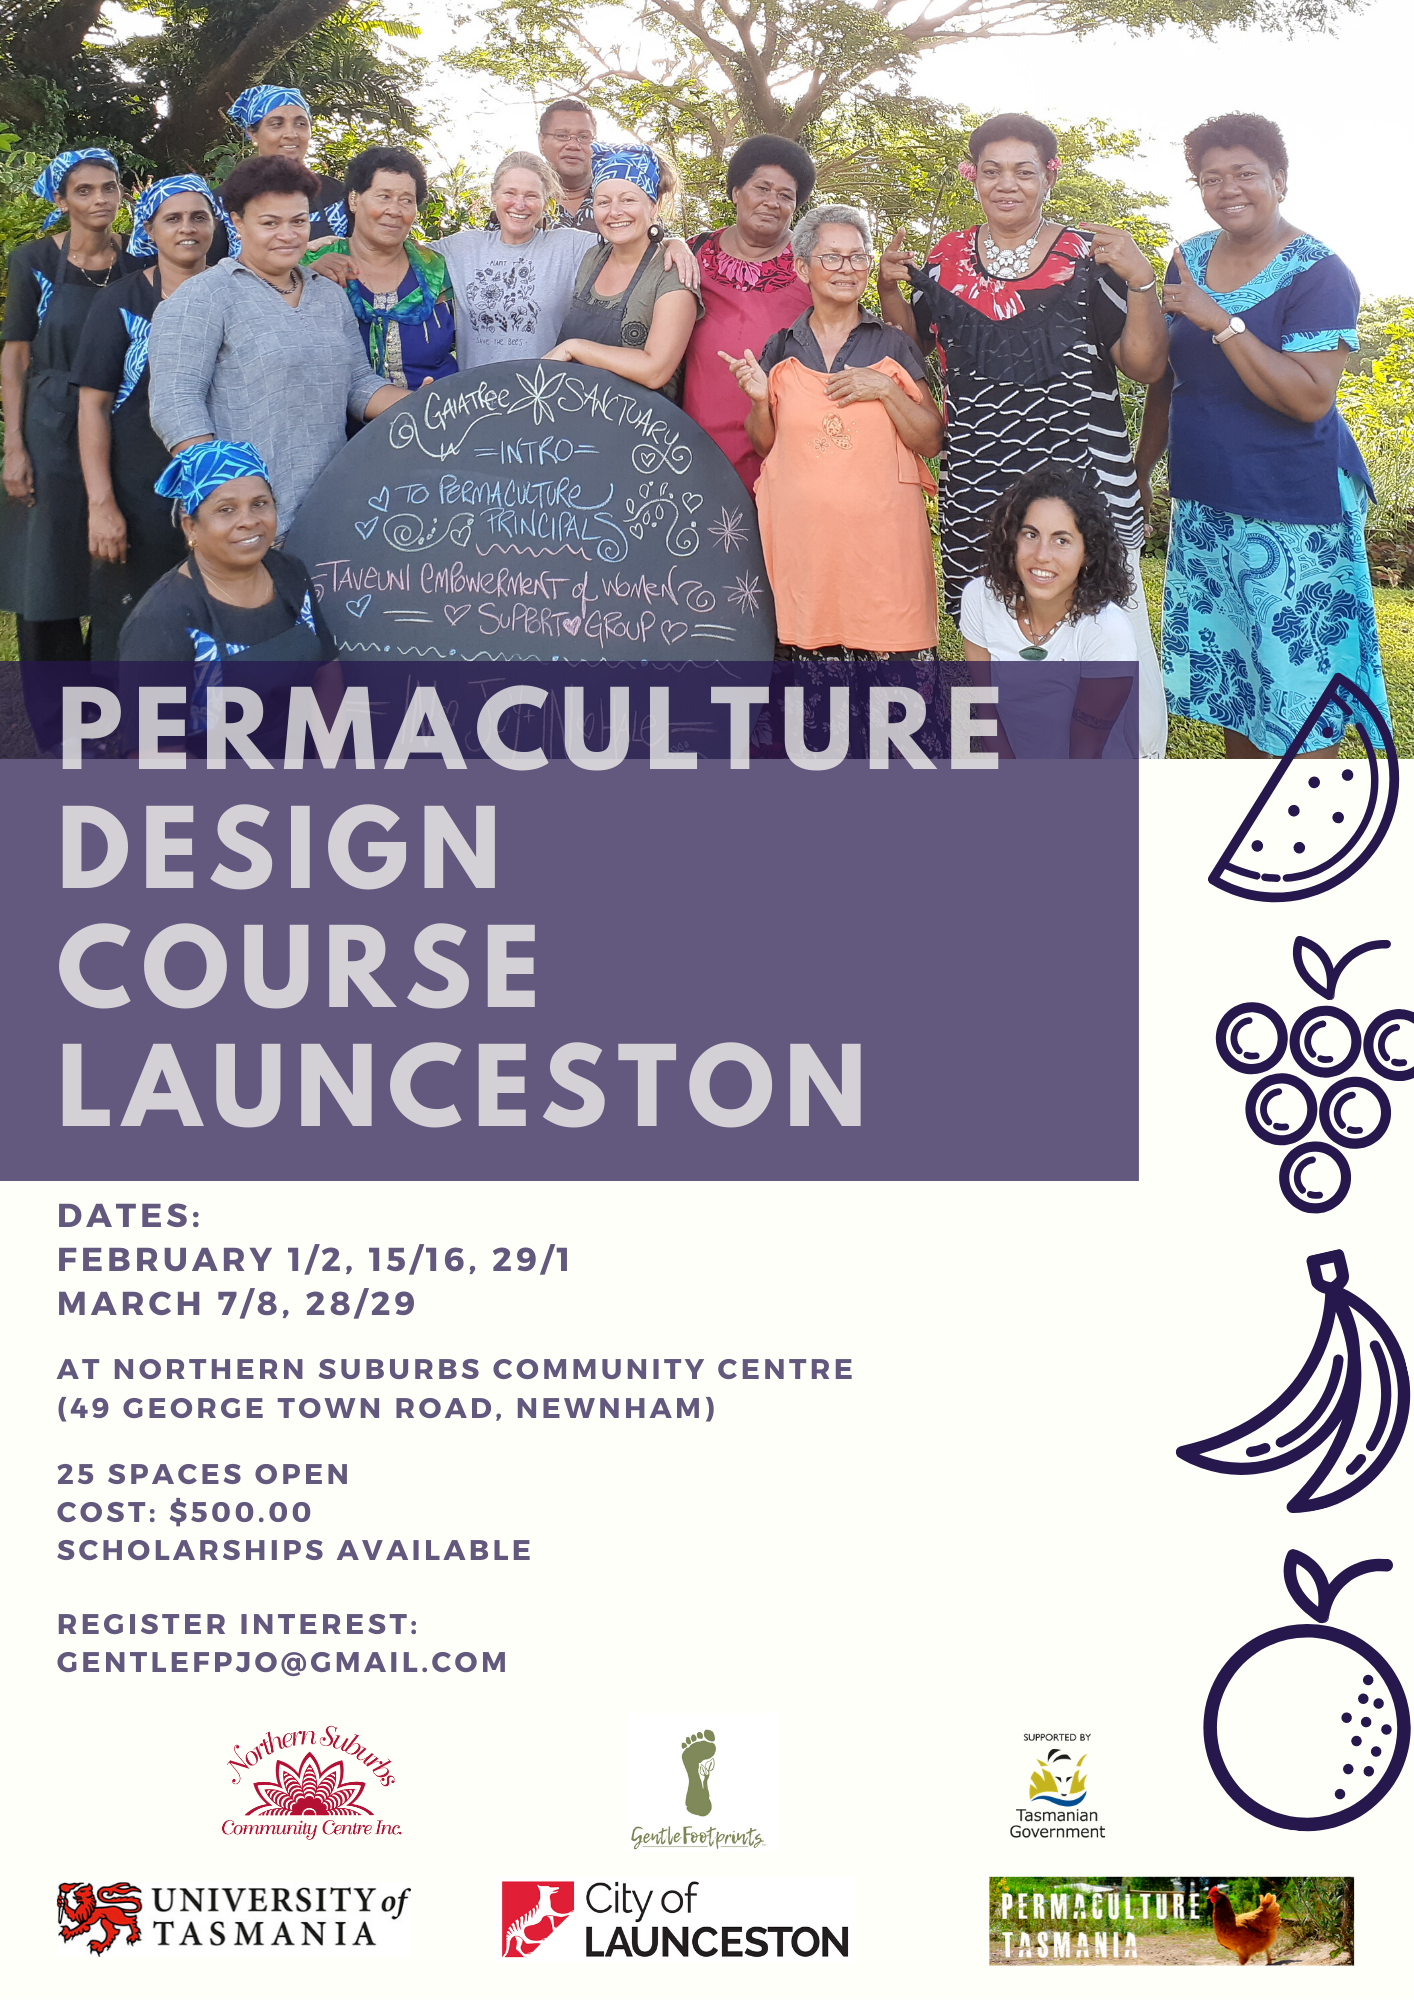 Launceston Permaculture Design Course (10 days over 5 weekends) @ Northern Suburbs Community Centre